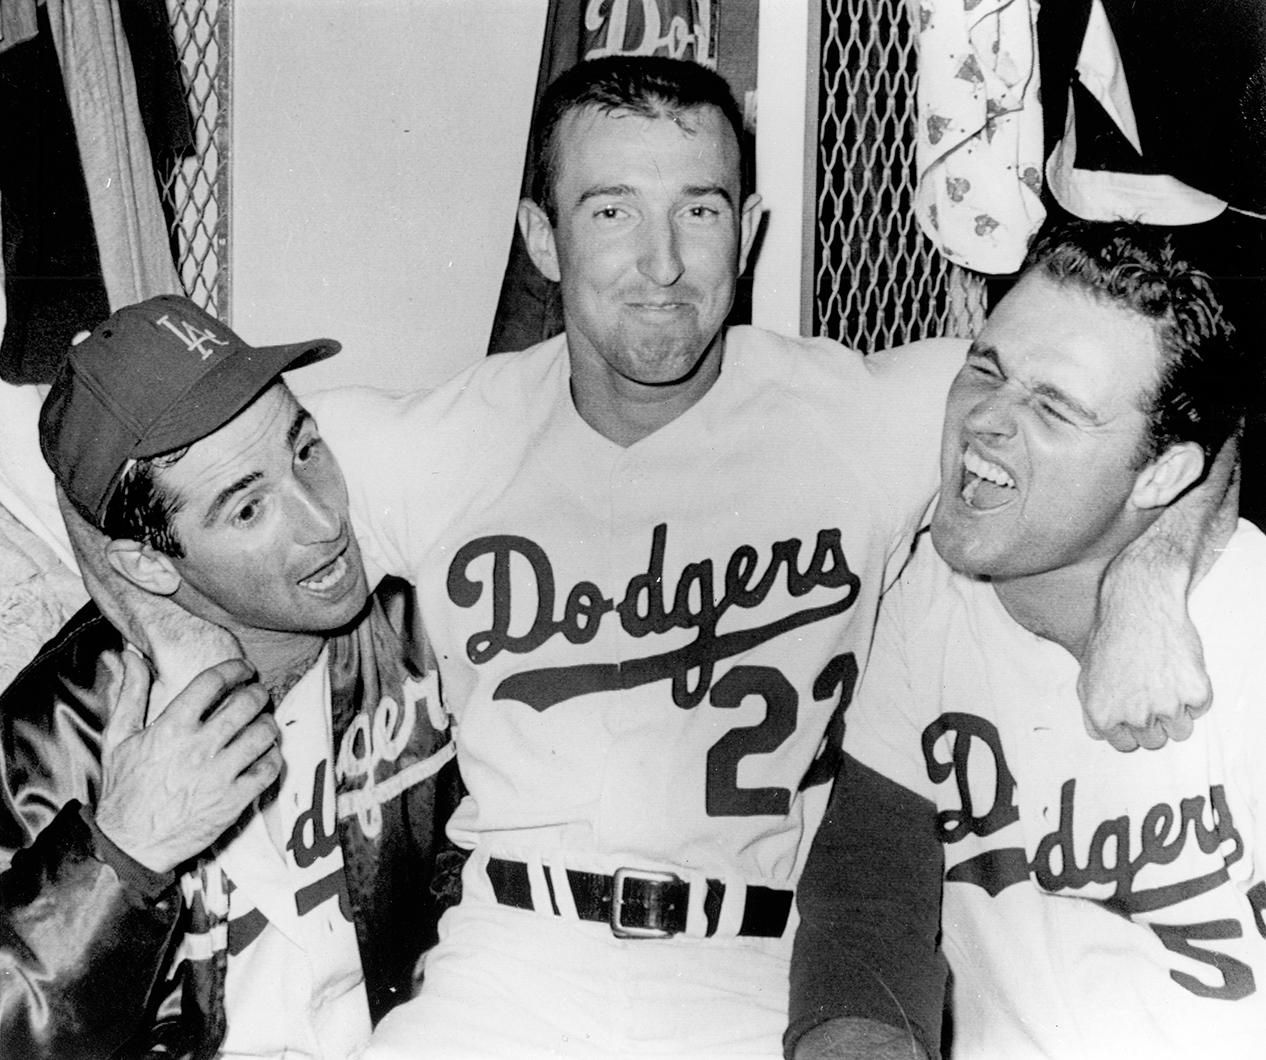 Claude Osteen (center) celebrates with Don Drysdale (right) and Sandy Koufax (left) after Sandy leads the Dodgers to a 7-0 victory over the Minnesota Twins in Game 5 of the 1965 World Series. (National Baseball Hall of Fame and Museum)